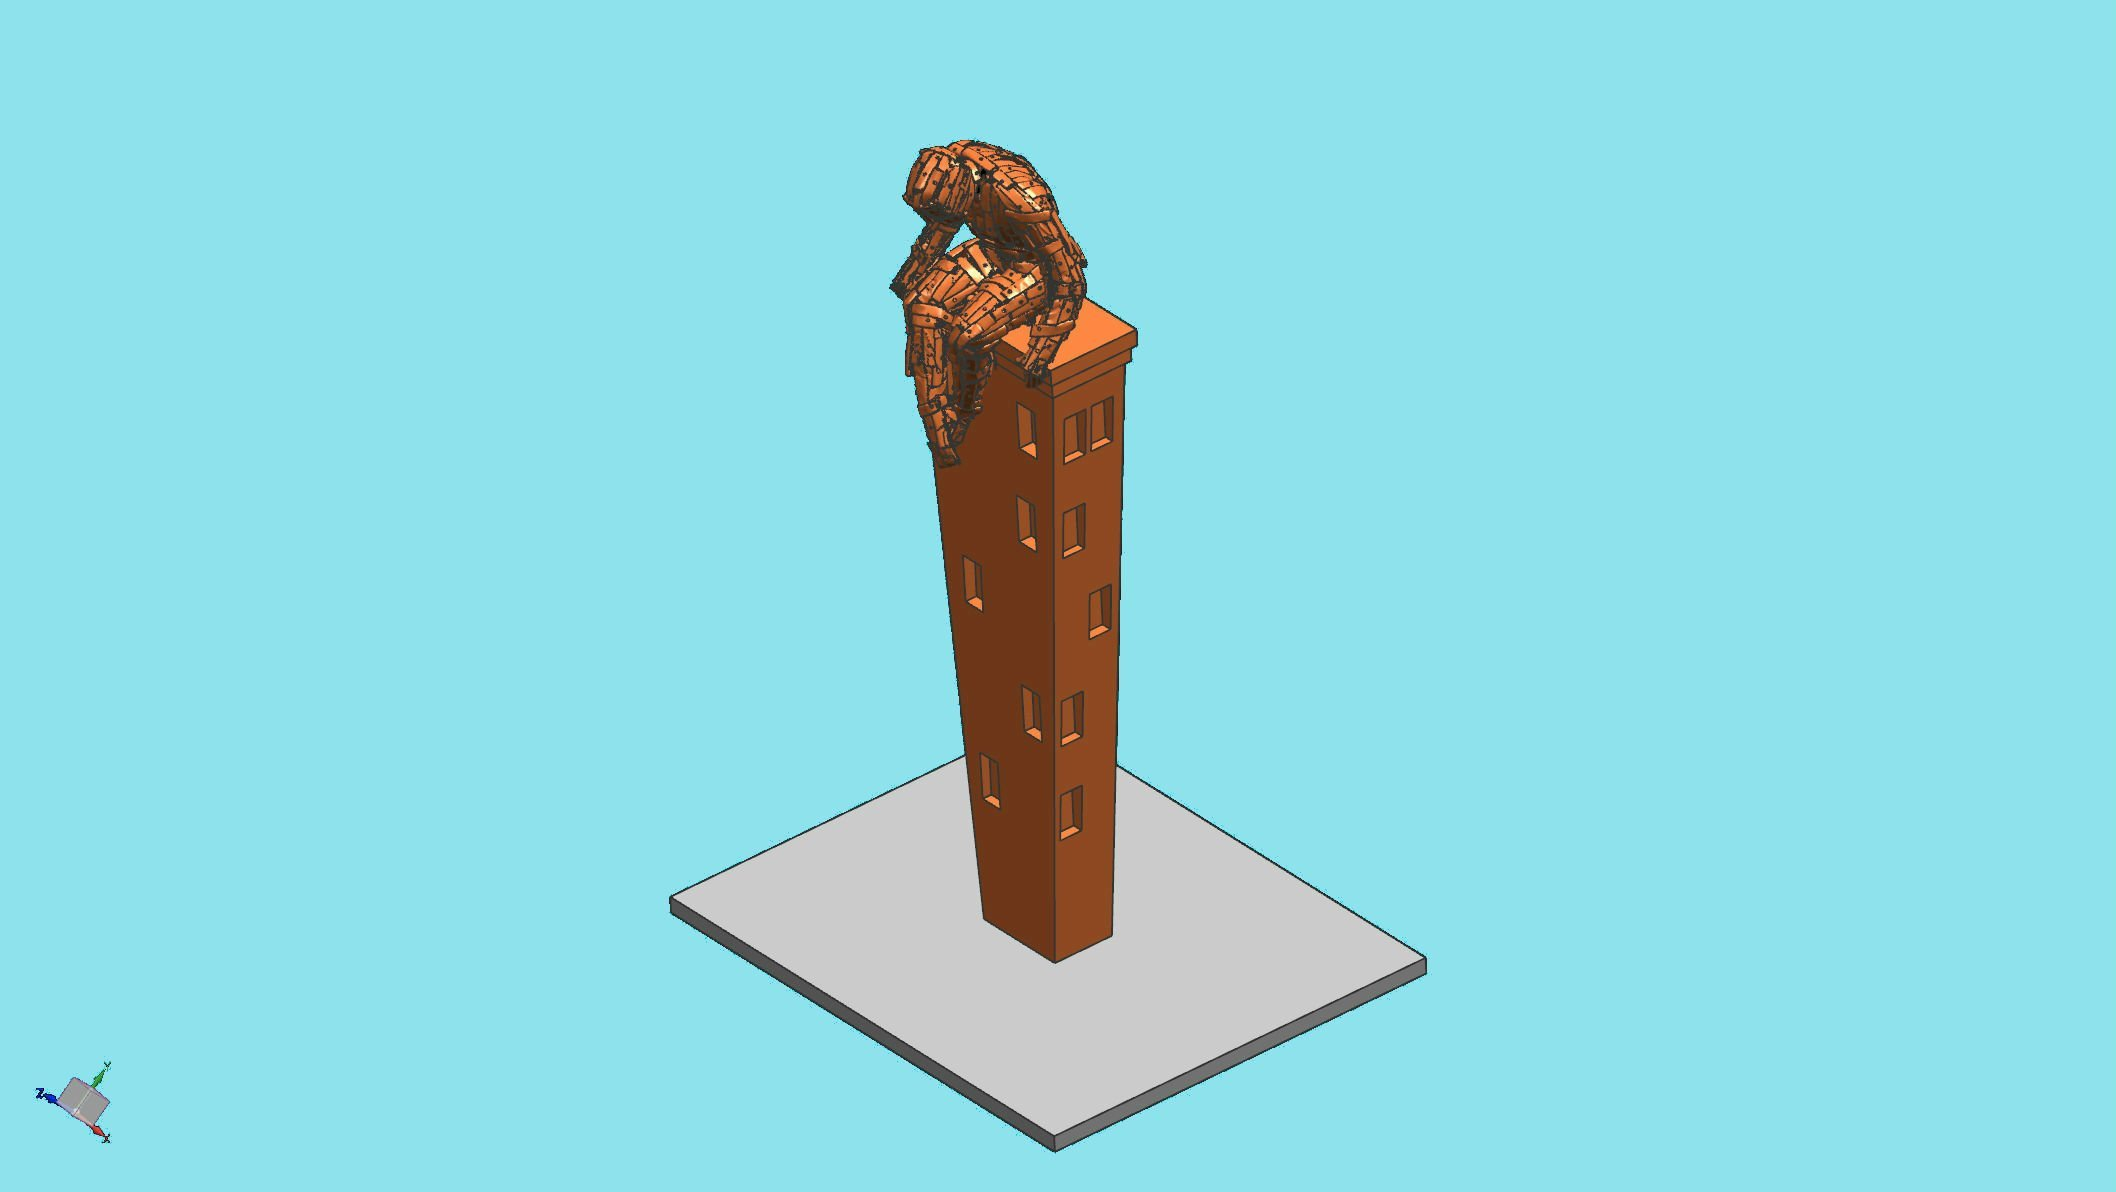 CAD image of sculpture on podium